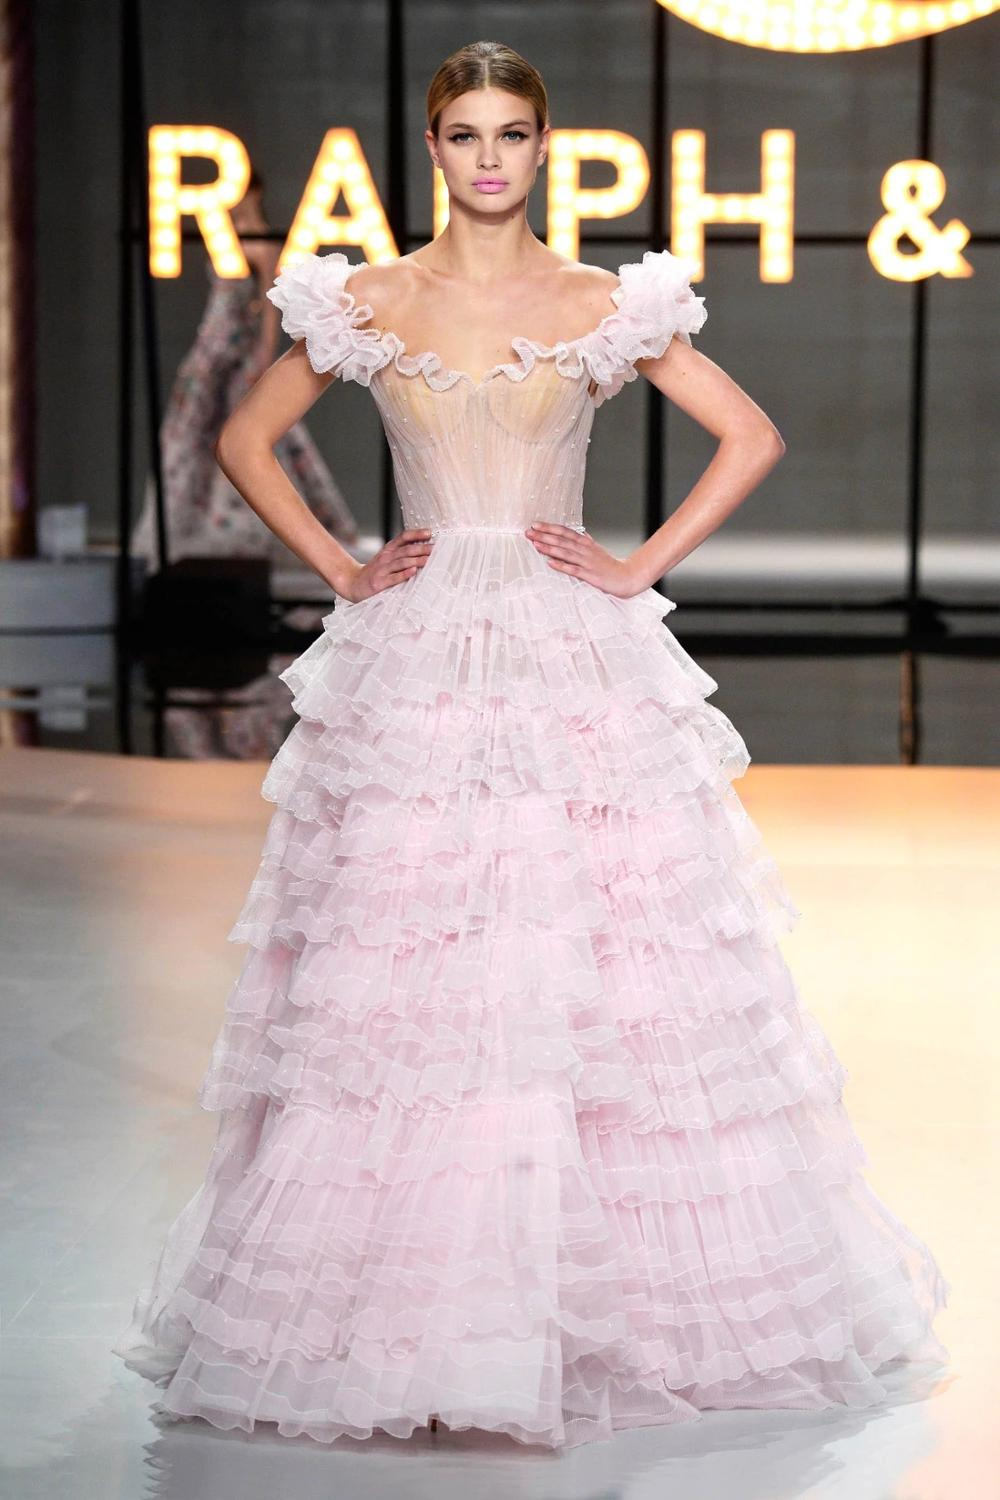 Pale Pink Pleated Tulle Ballgown Featuring Tiered Fuffles Frilled Off-the-shoulder Neckline Scattered Beading Evening Dress